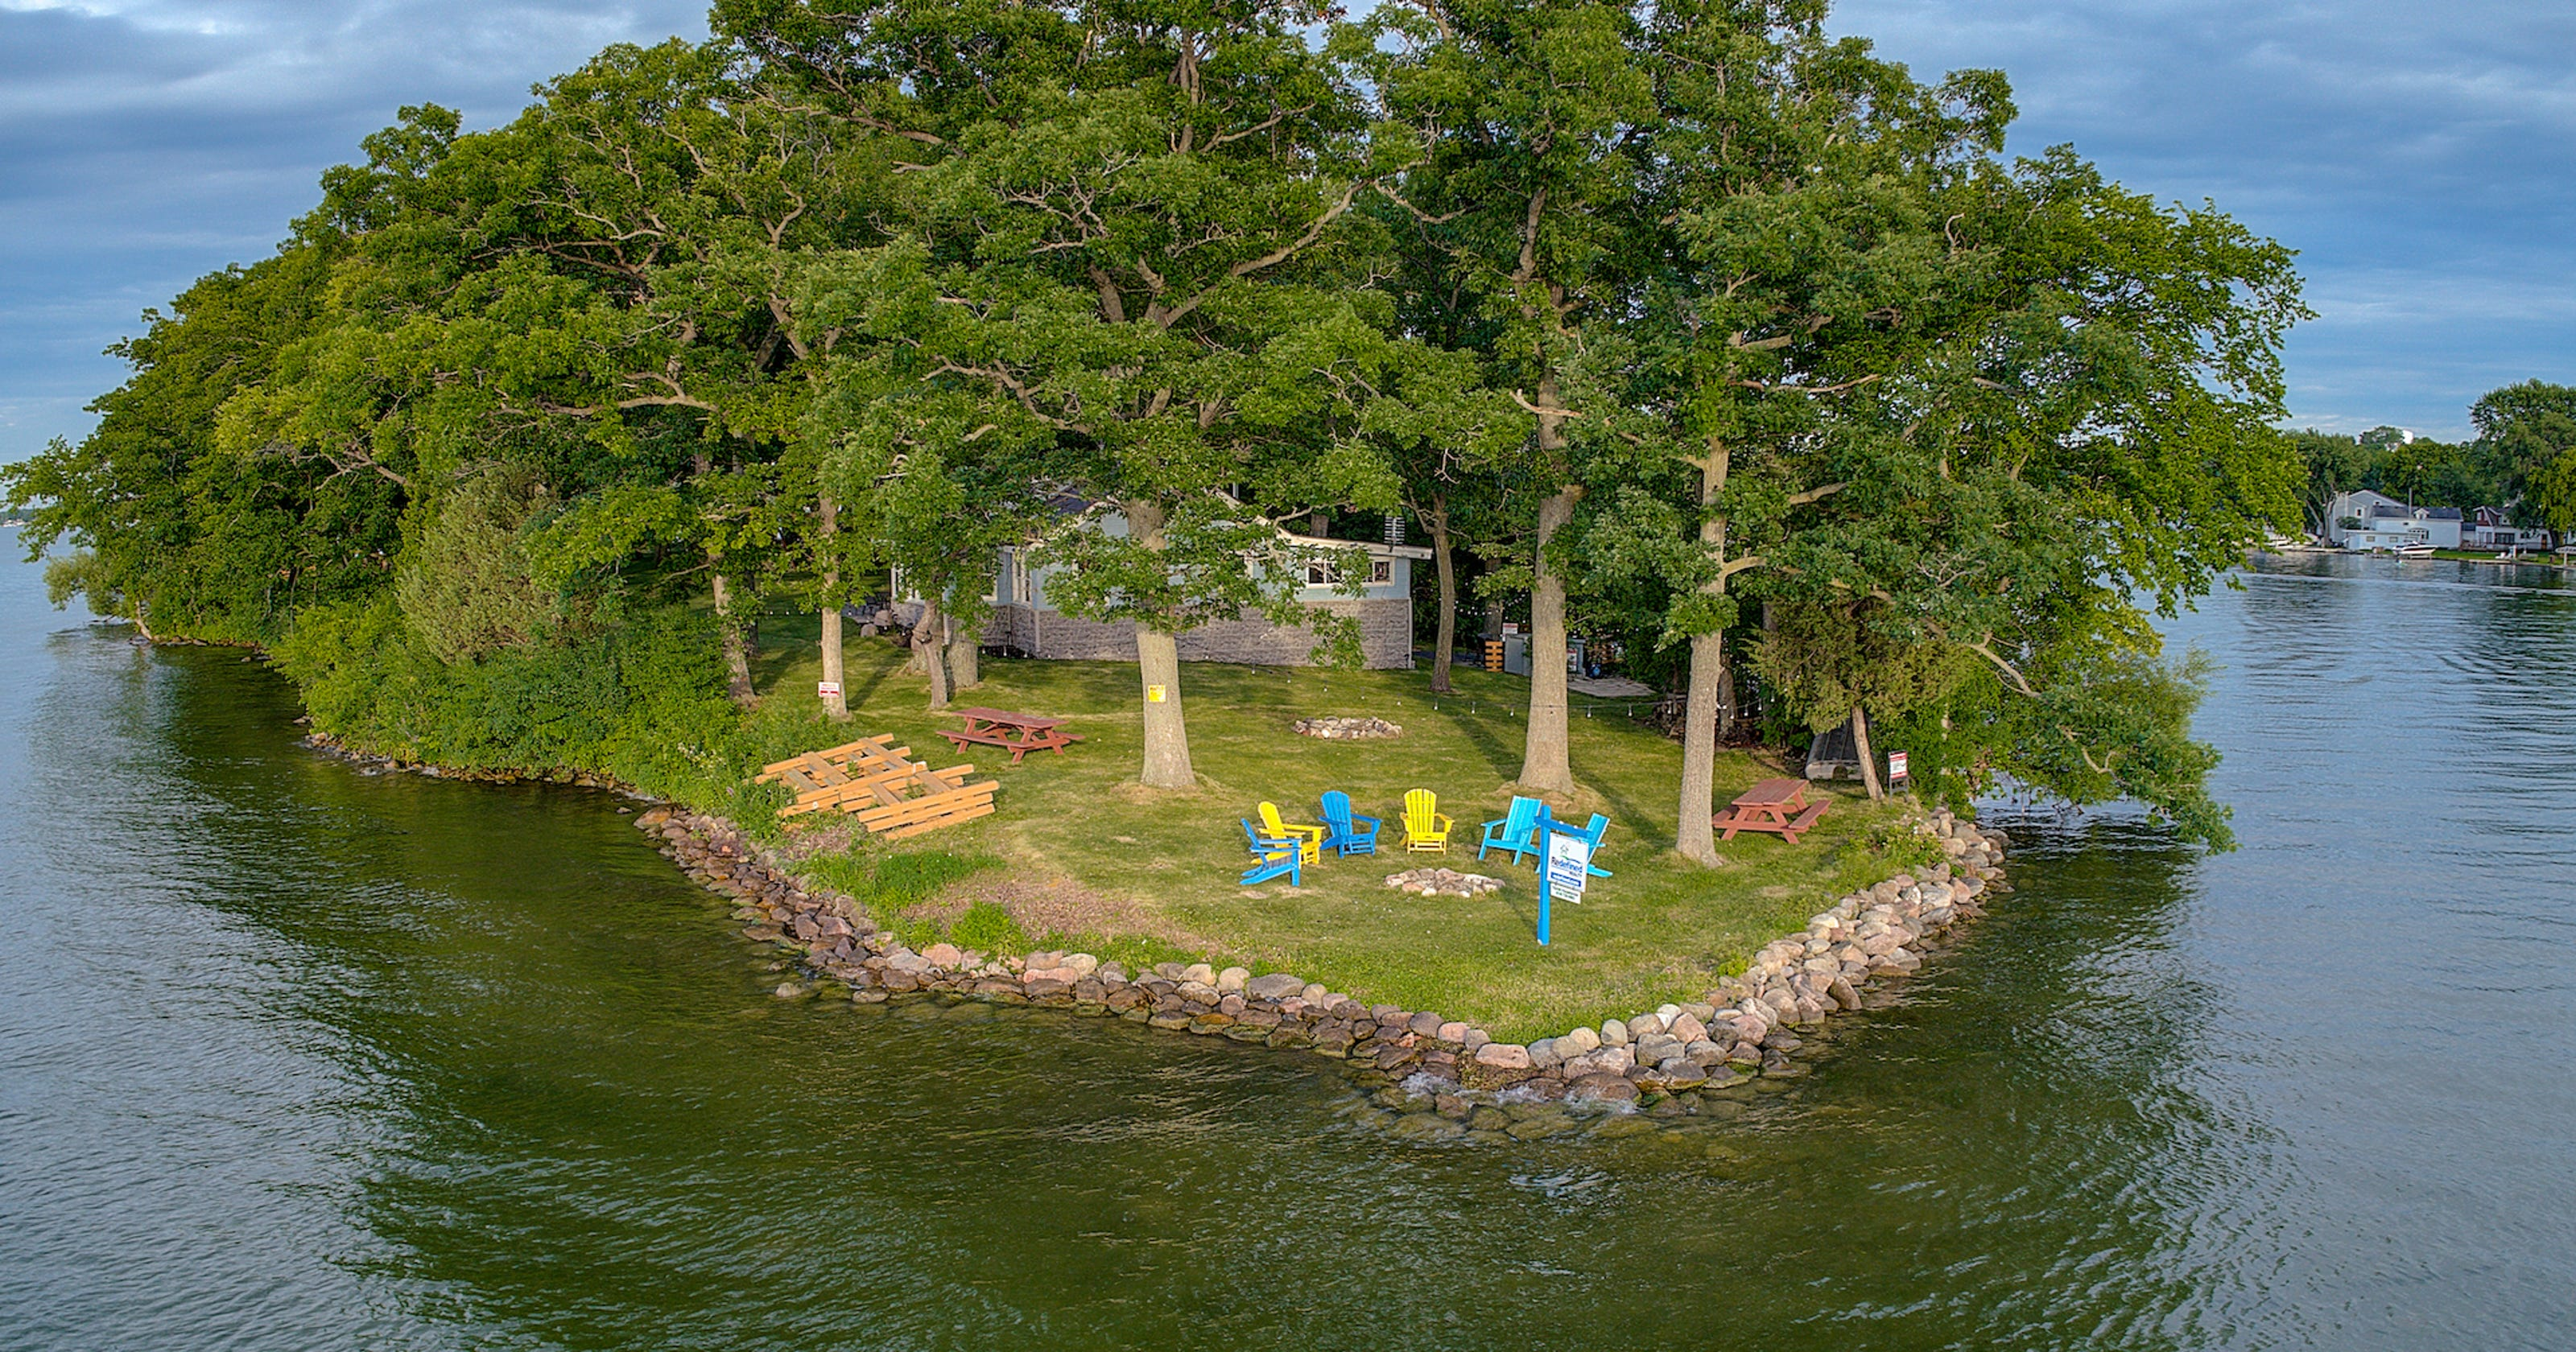 Private island getaway in Pewaukee Lake can be yours for